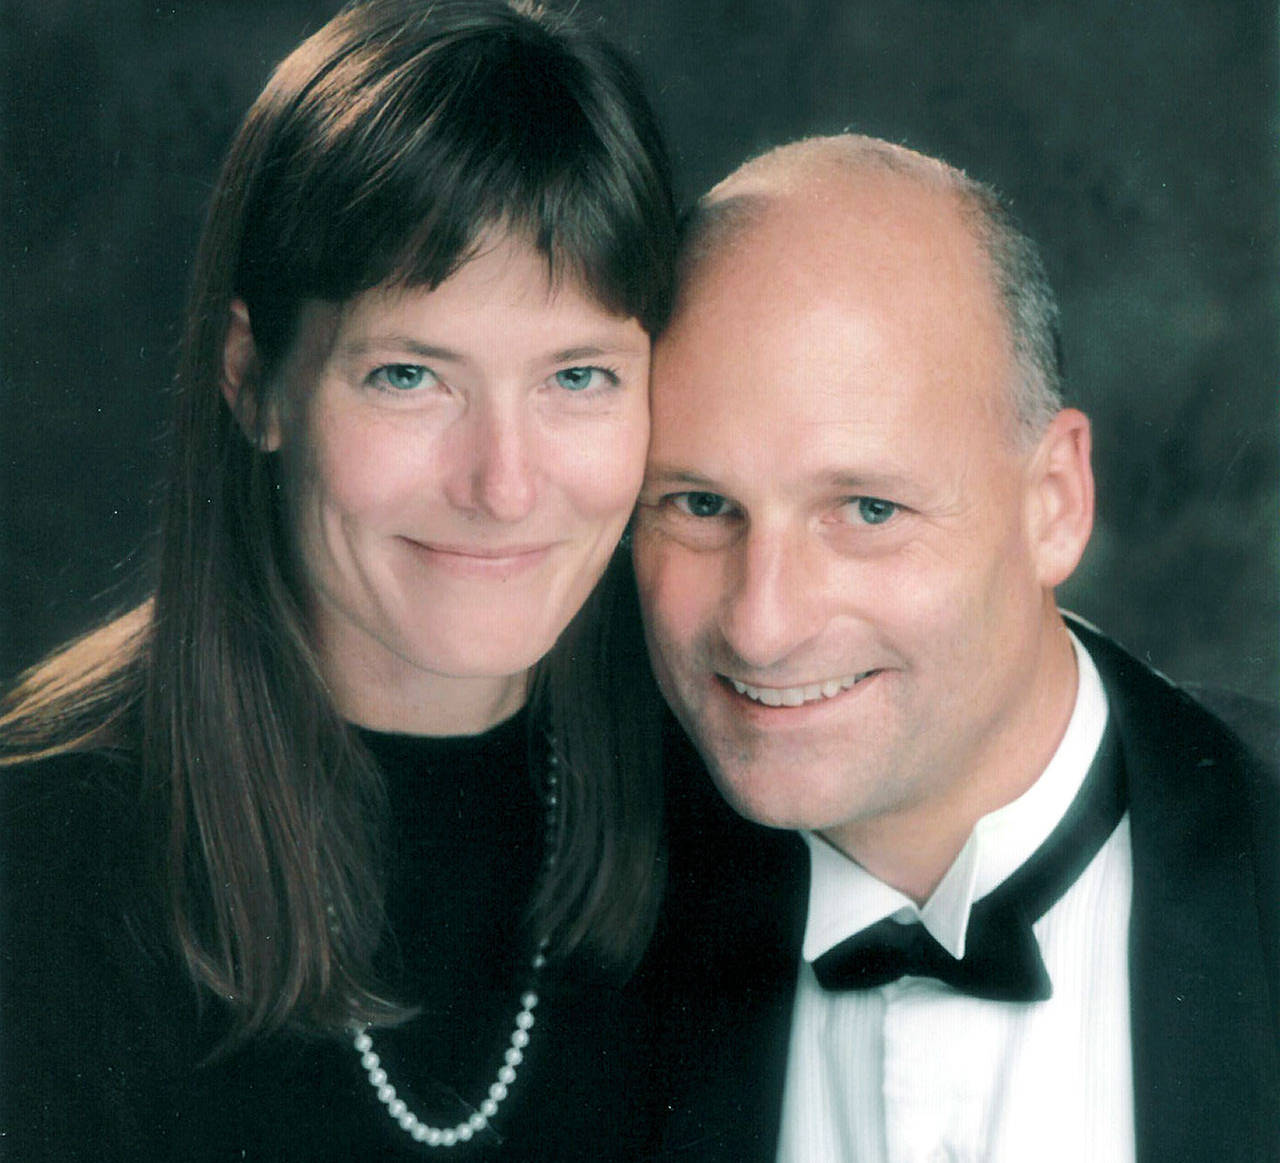 Lisa Paul (left) and Mark Roe each served three decades in the Snohomish County Prosecutor's Office, handling some of the most difficult nad emotionally taxing cases. They were married for most of that time. (Yuen Lui photo)